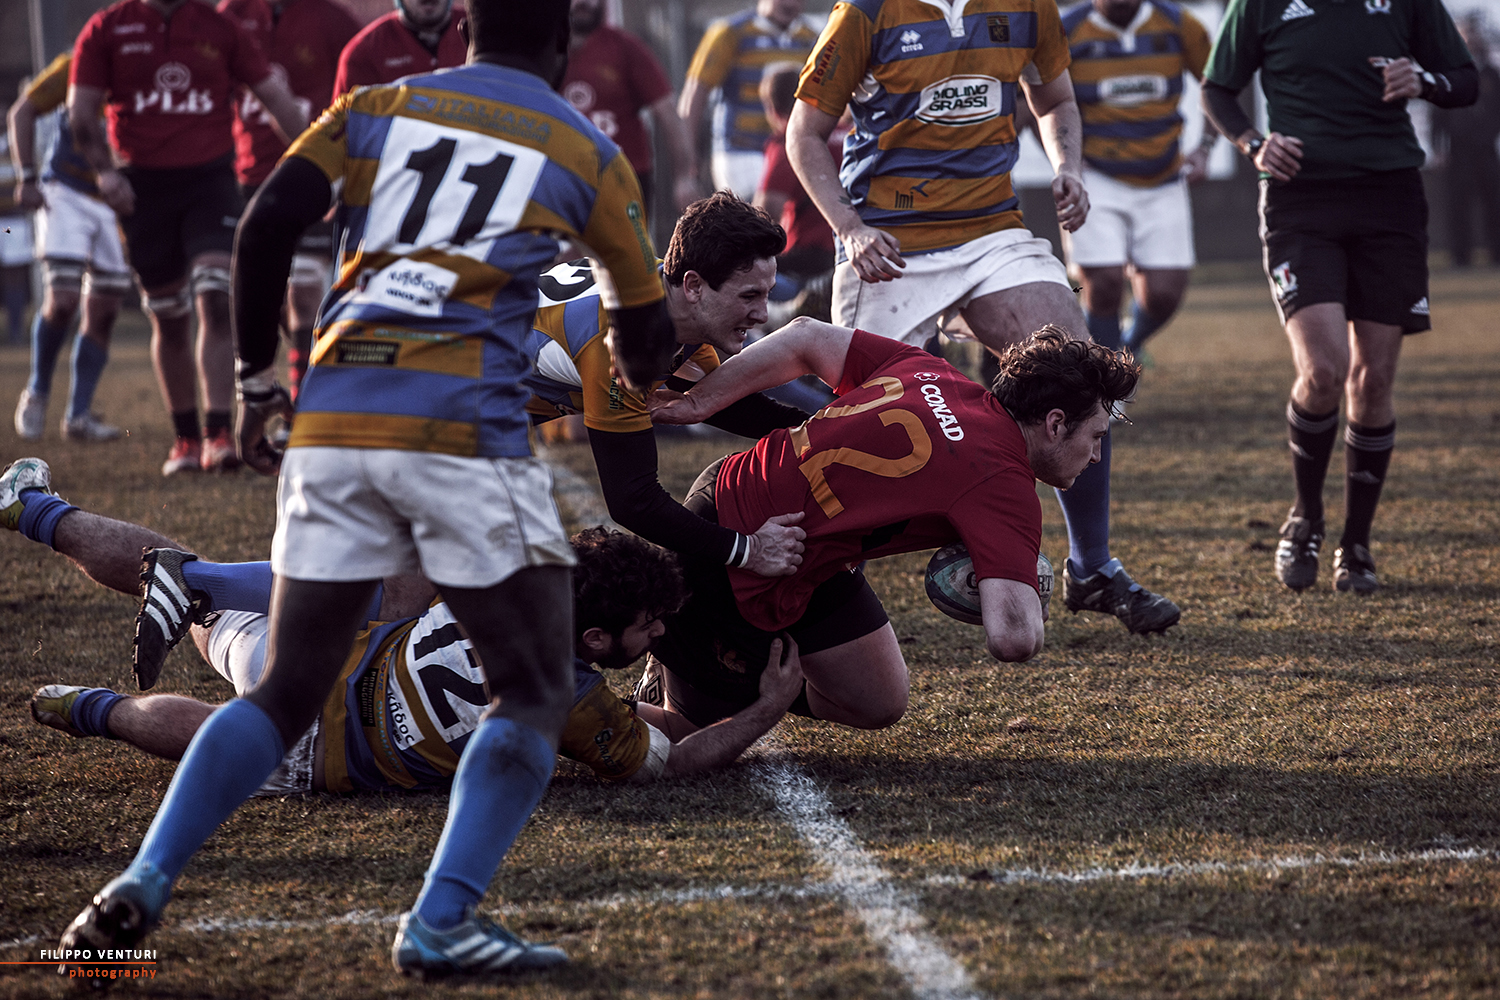 romagna_rugby_parma_16.jpg